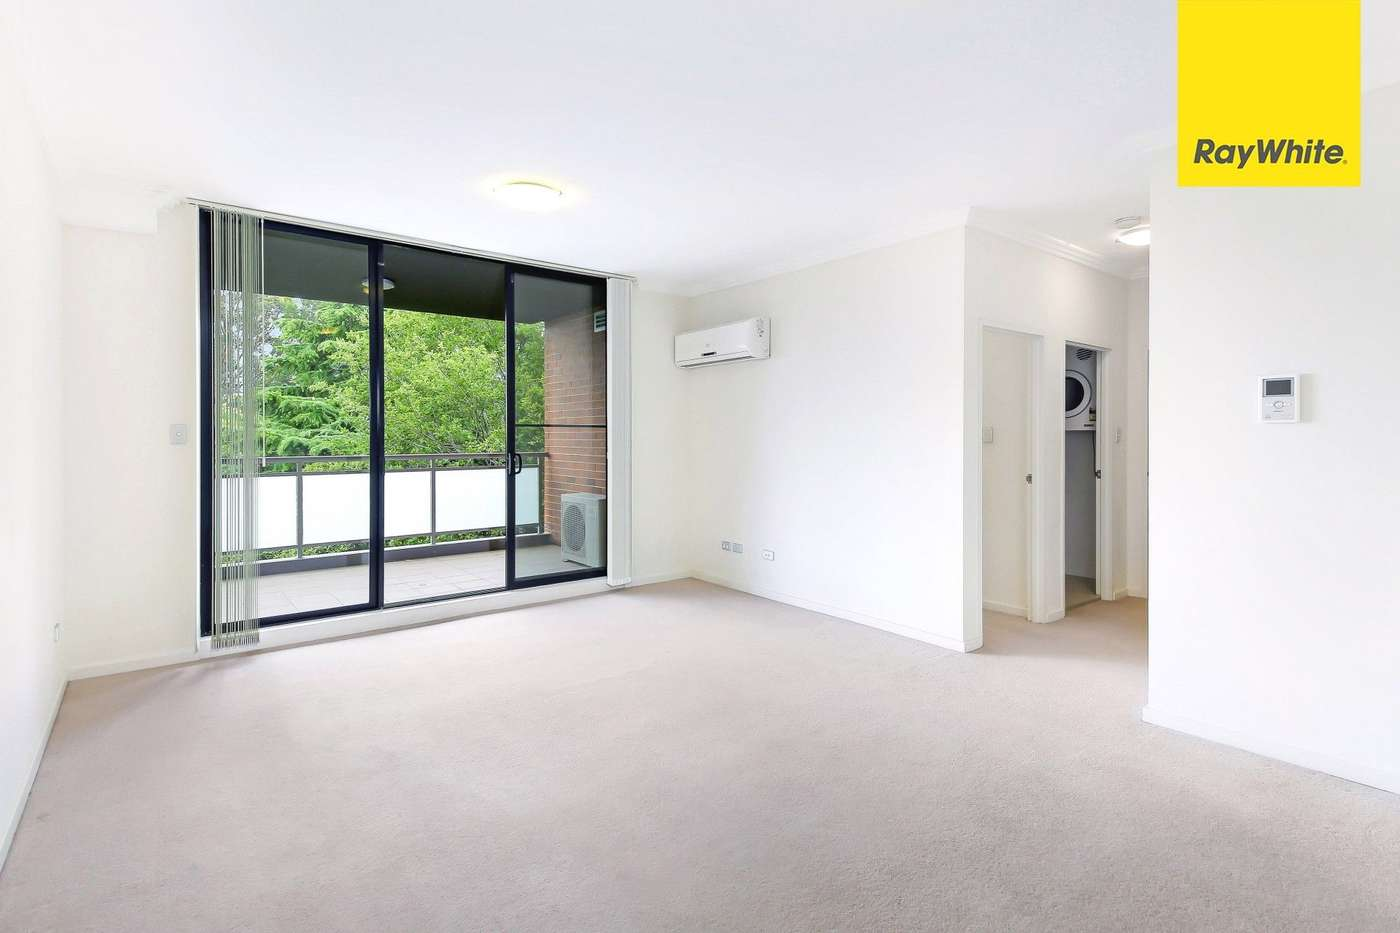 Main view of Homely apartment listing, 41/15 Young Road, Carlingford, NSW 2118